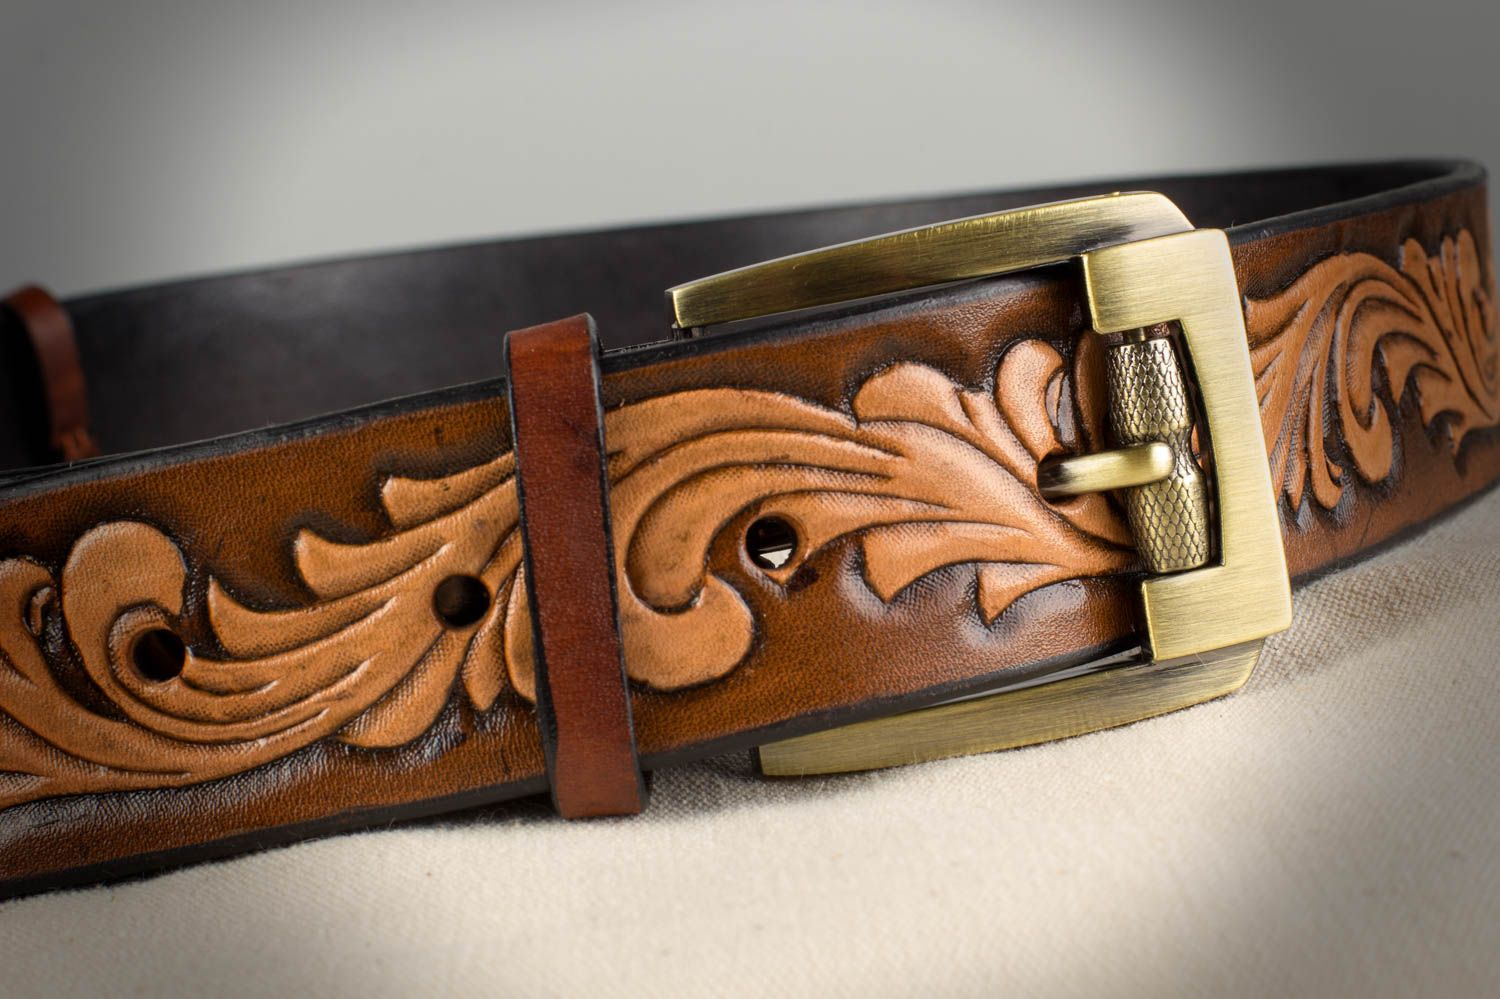 Handmade stylish unusual brown belt made of natural leather with metal buckle photo 1